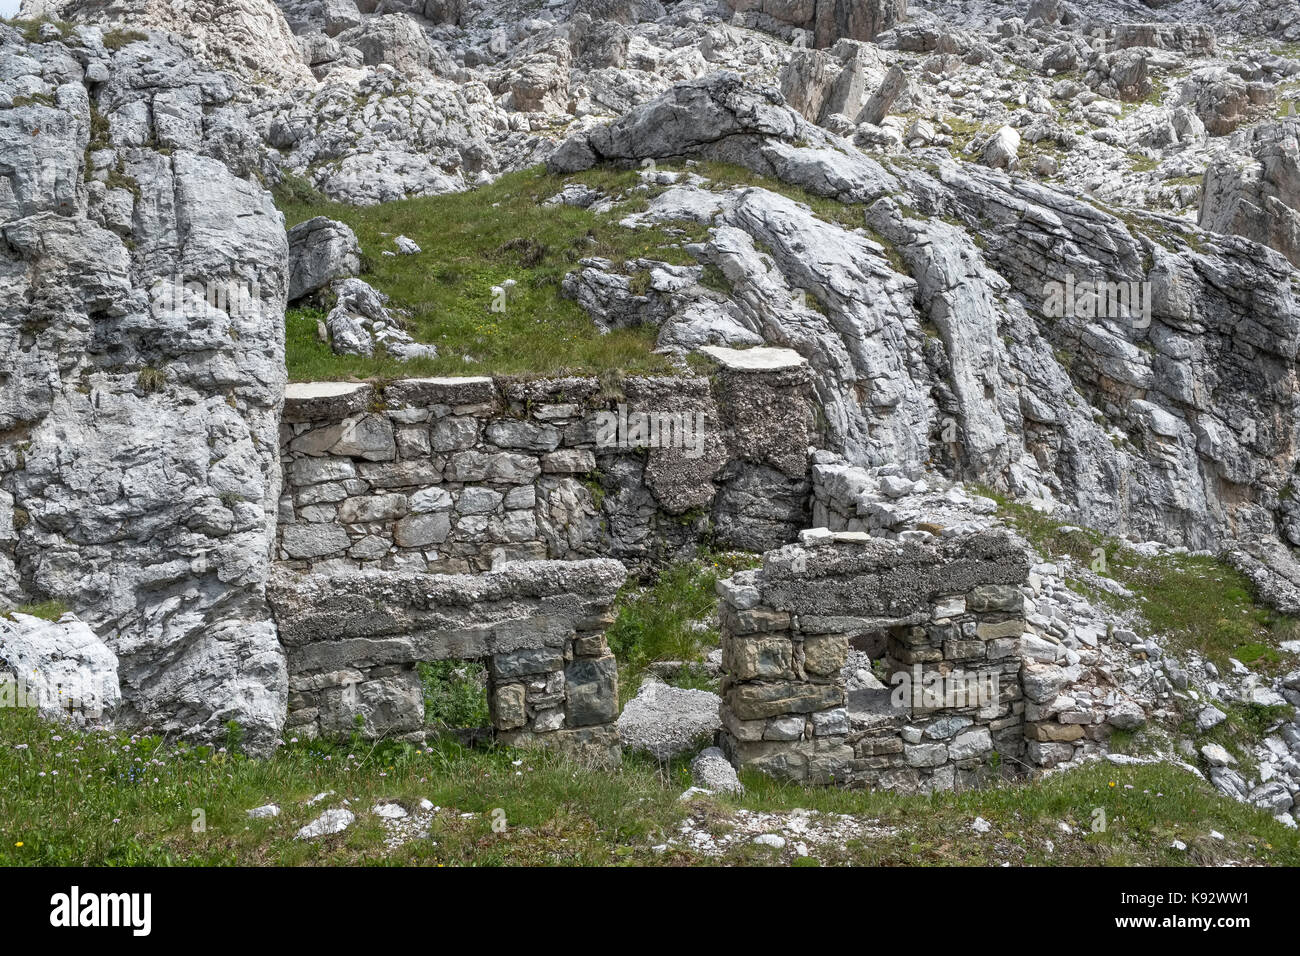 The Dolomites, Northern Italy. First World War fortifications on the front line between Italy and Austria, along - Stock Image